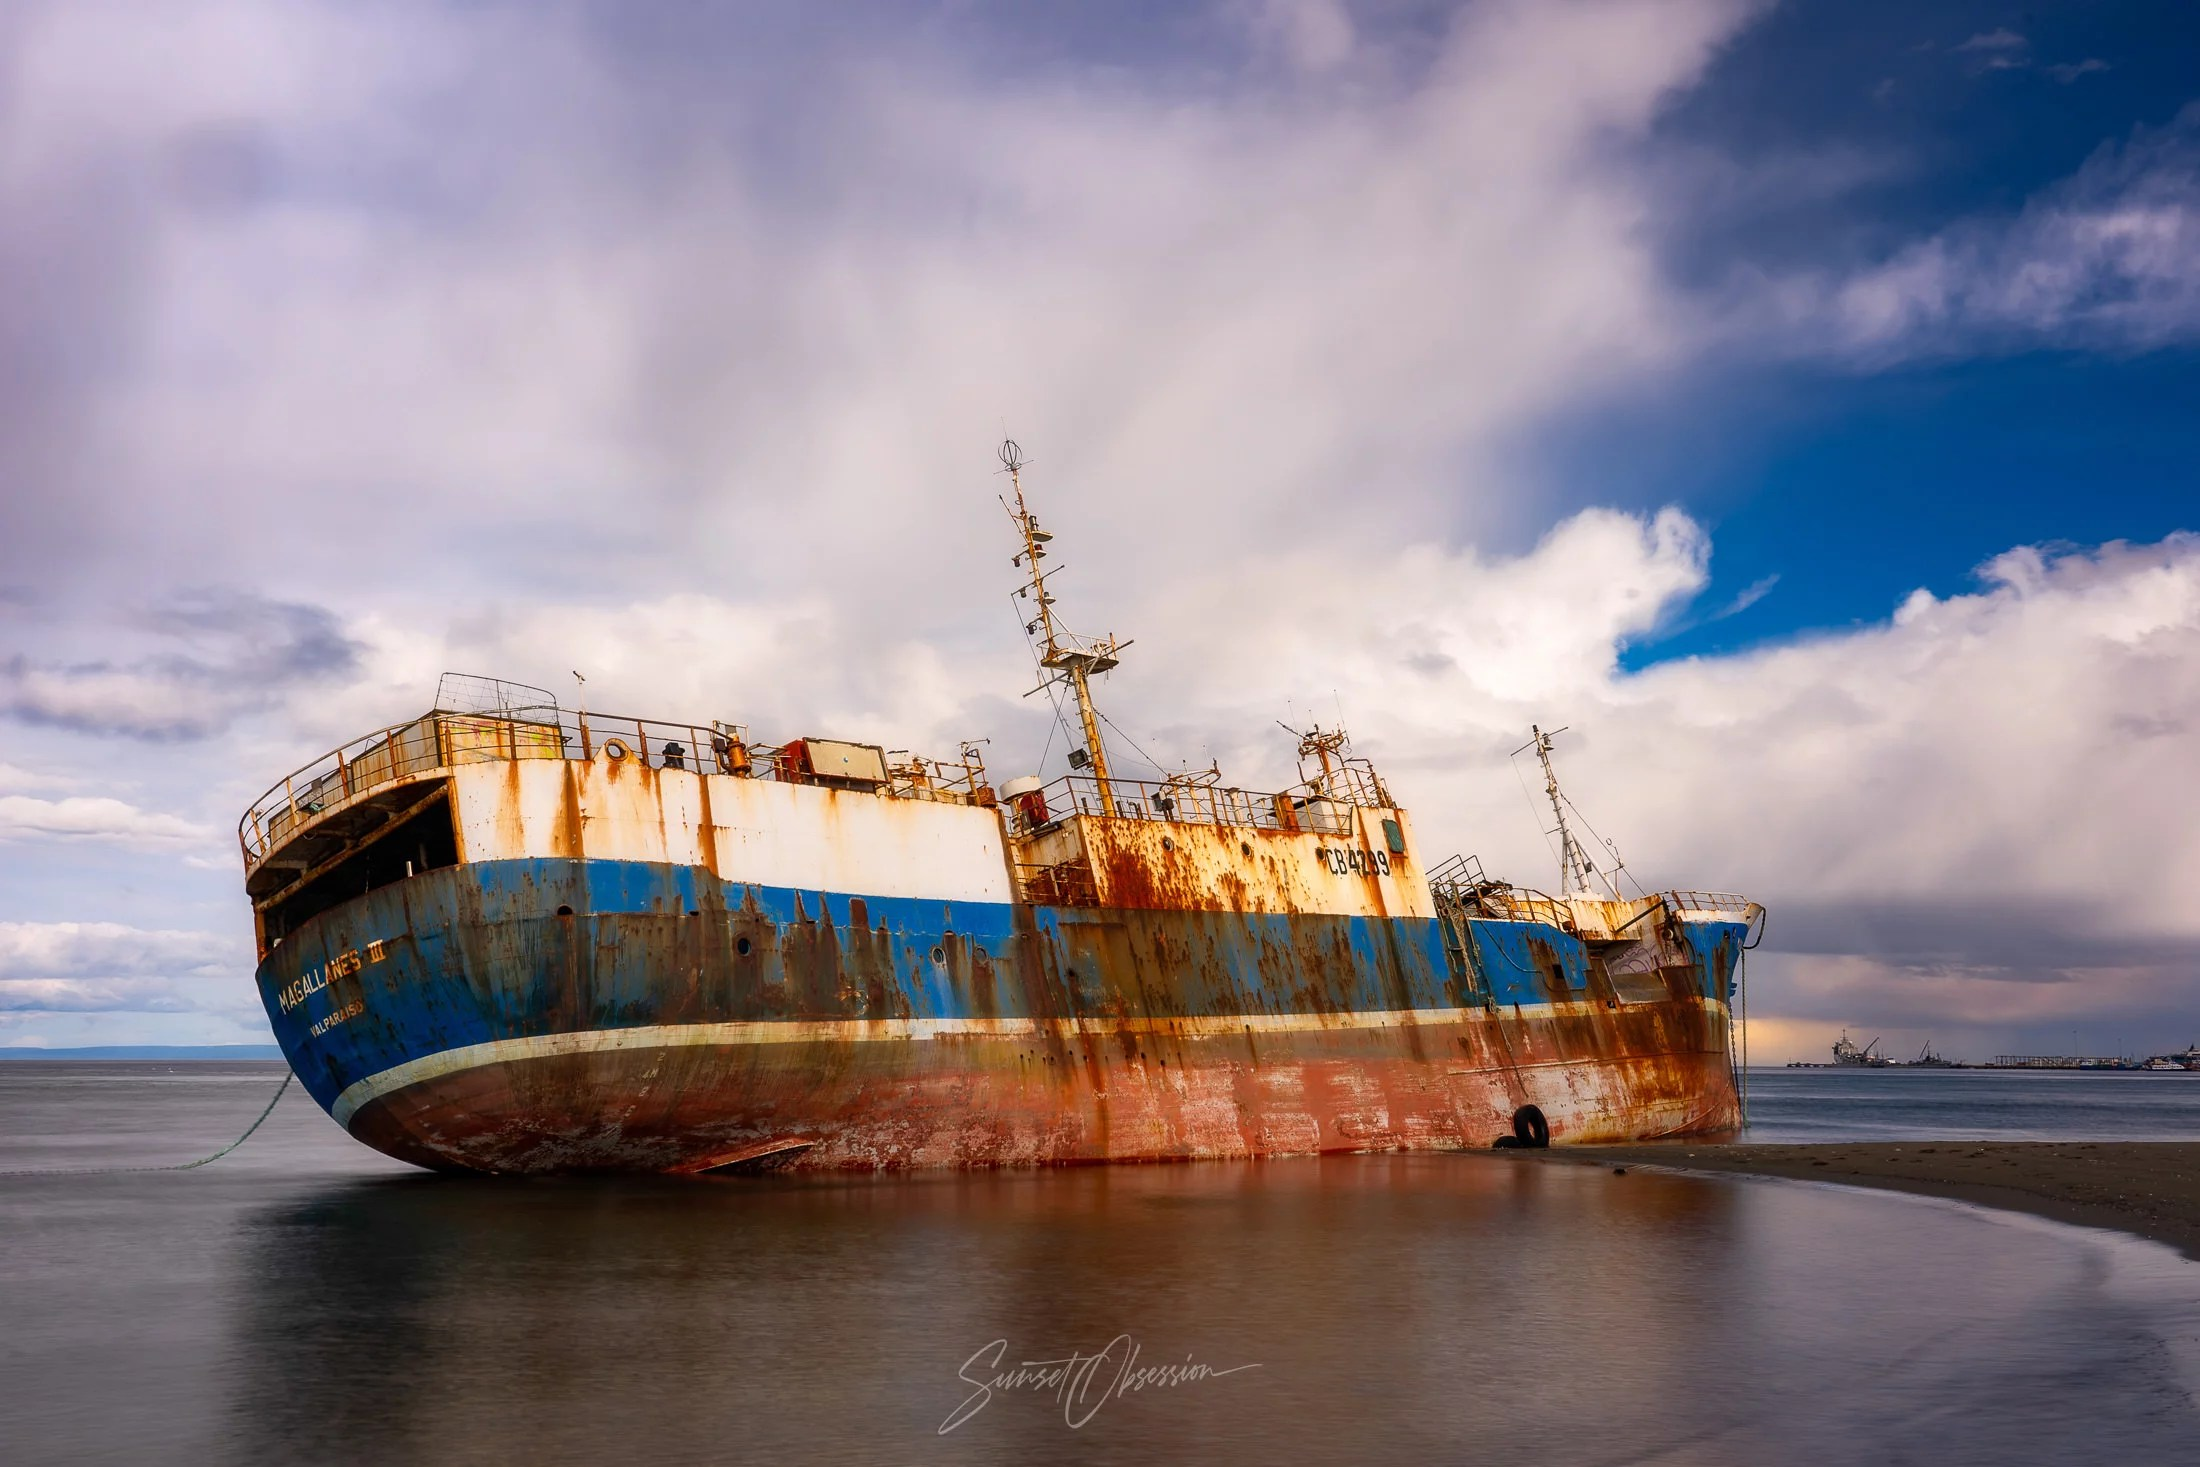 The shipwreck of Magallanes III in Punta Arenas